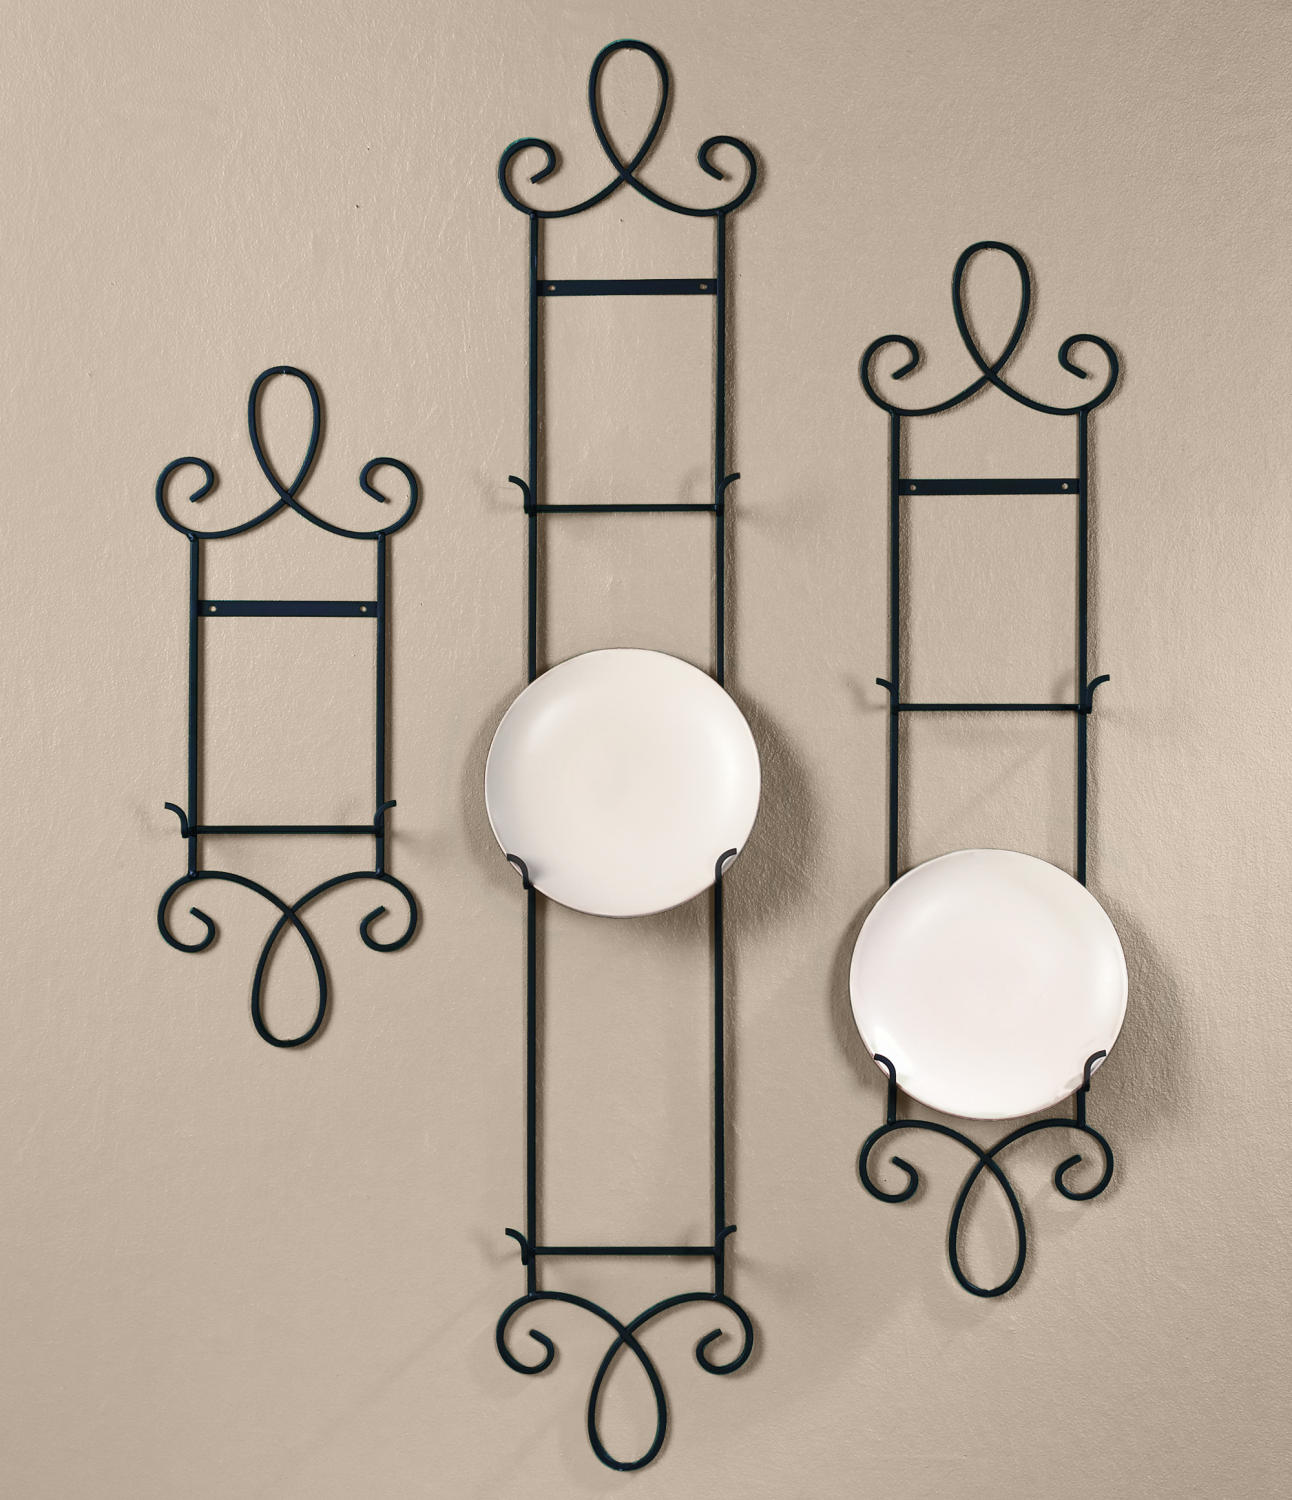 Decorative Metal Plates For Wall Wall Mounted Decorative Plate Holder Cbaarch  sc 1 st  Wall Plate DESIGN IDEAS & Decorative Metal Plates For Wall | Wall Plate Design Ideas